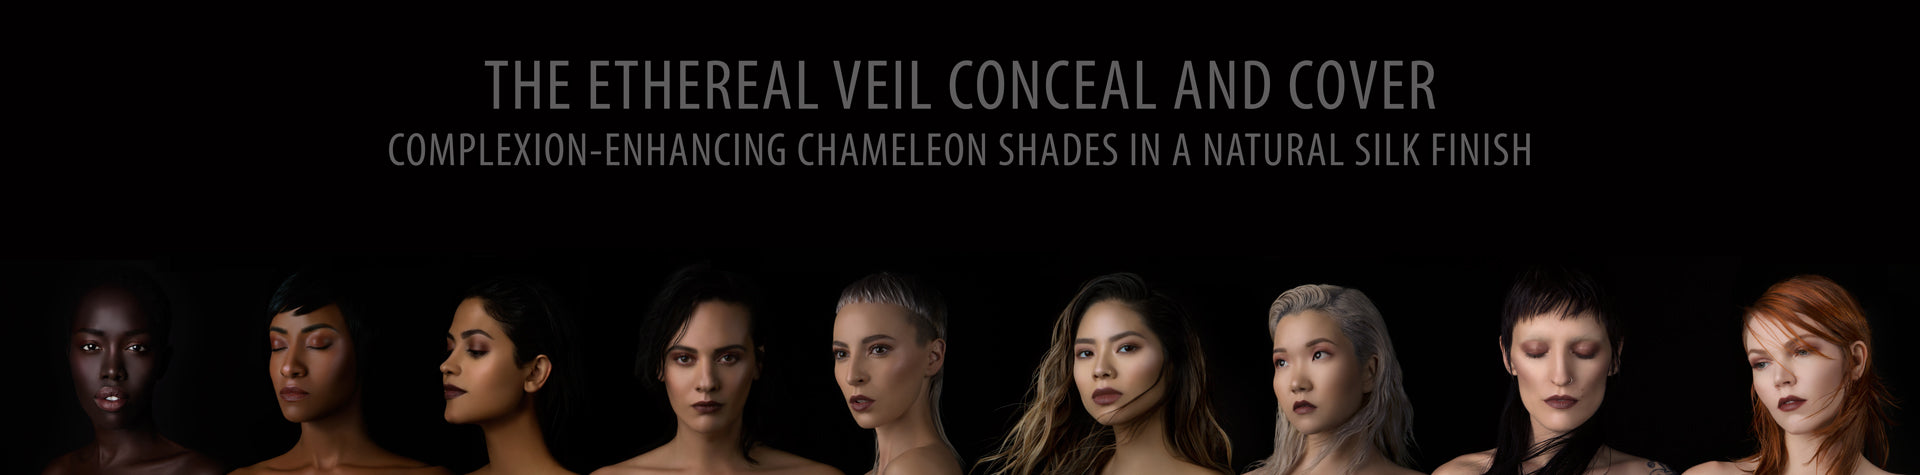 The Ethereal Veil Conceal and Cover - Concealer Foundation and Color Correction